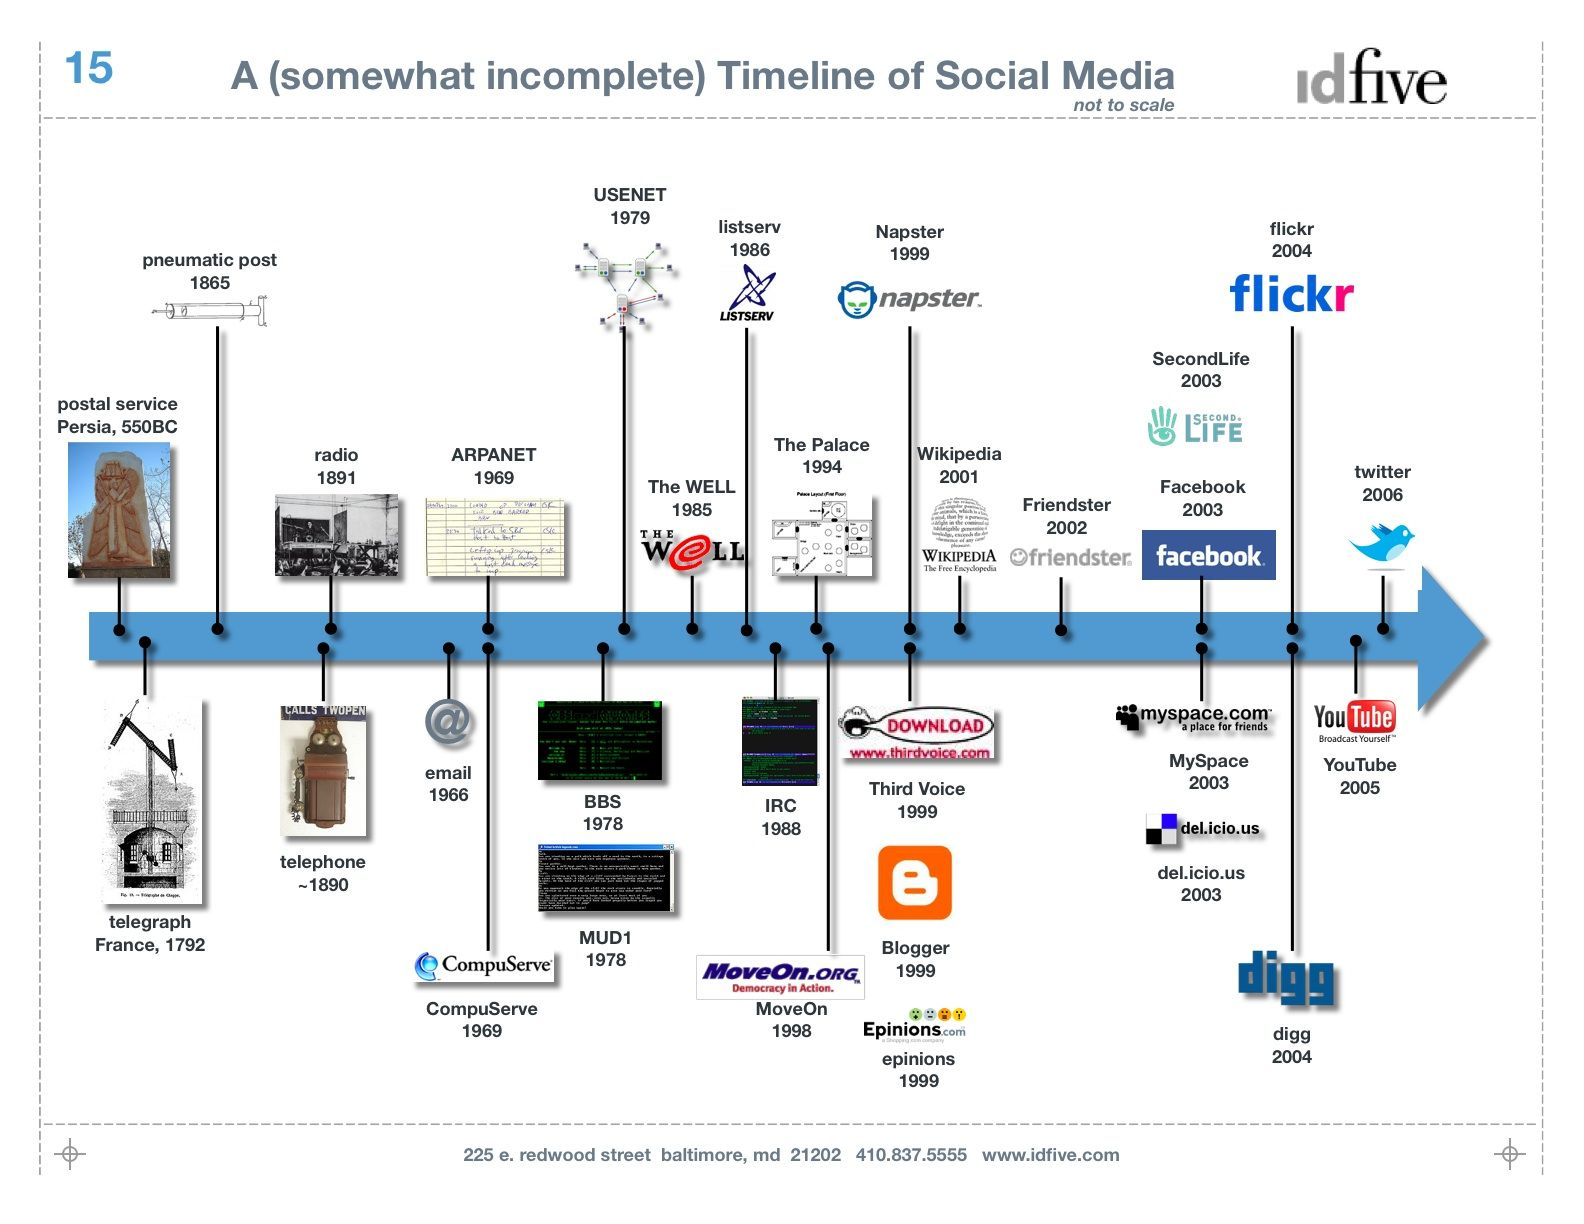 Social media history timeline. Social Media plays a role in news ...